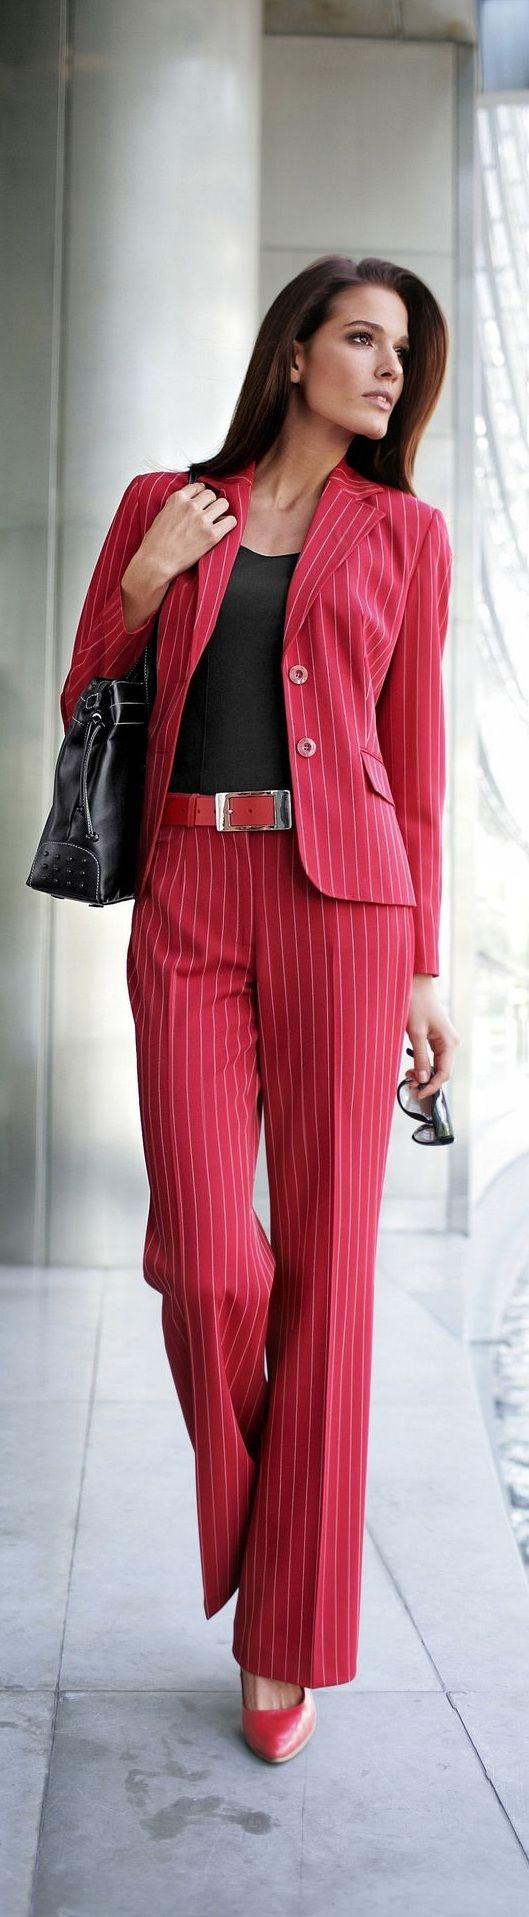 Perfectly pinstriped. #suits #pinstripes